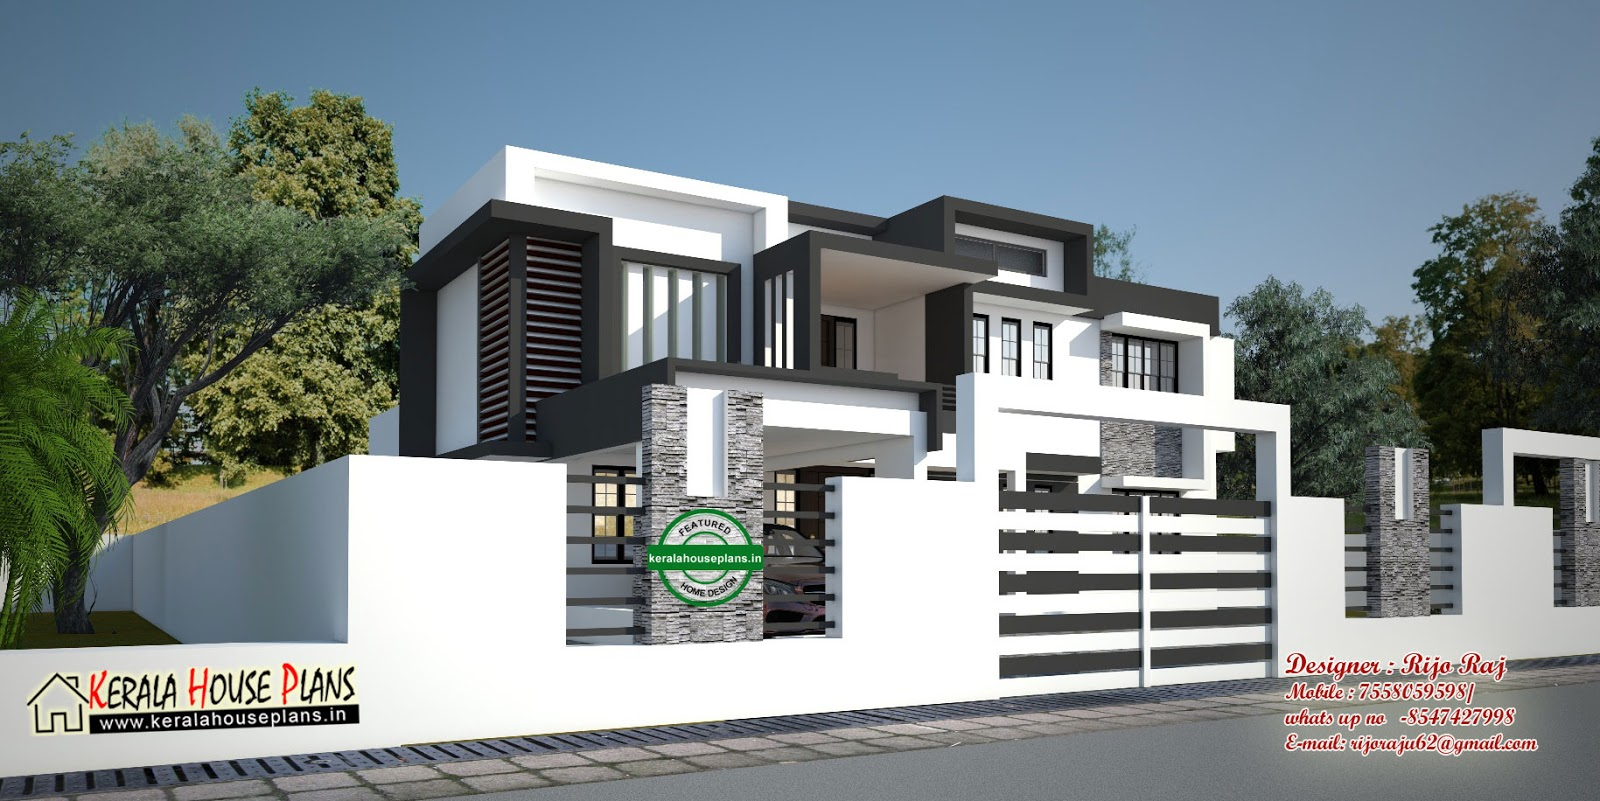 Kerala house plans designs floor plans and elevation for Home plans and designs